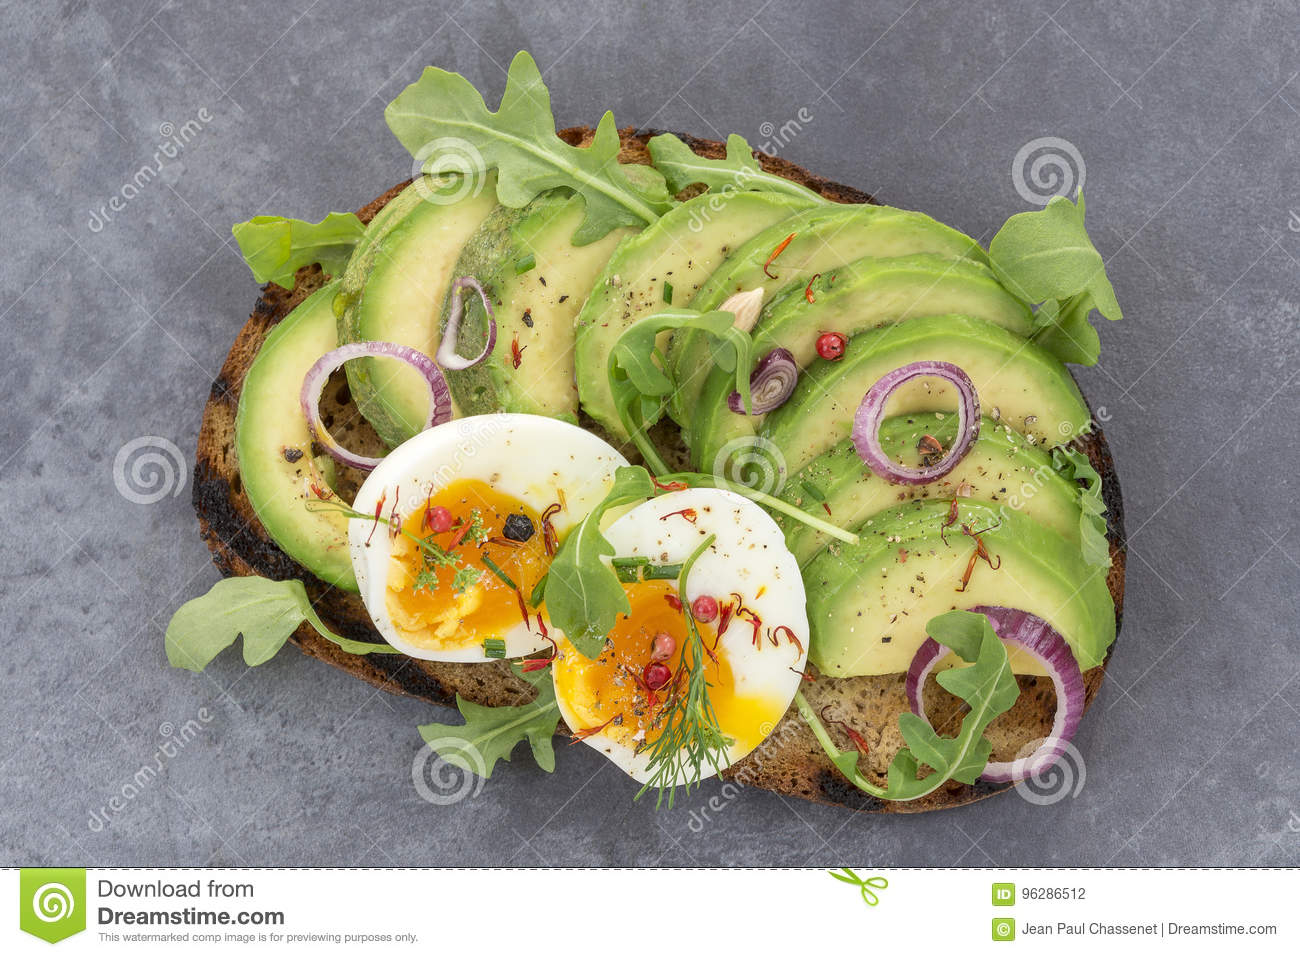 Whole Wheat Bread Avocado Poached Egg Sandwich With Fresh Herbs